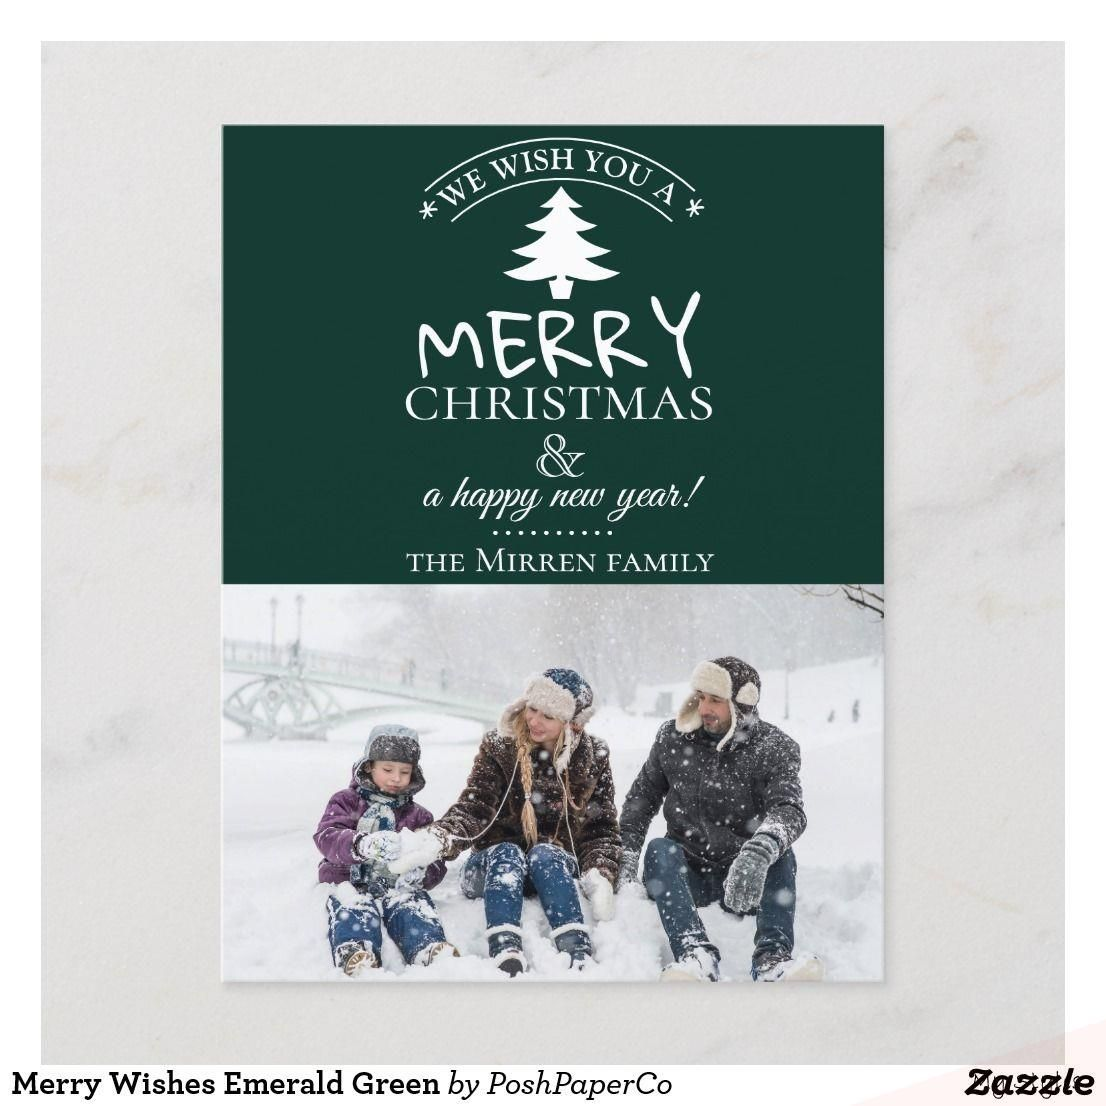 Merry Christmas And Happy New Year Green And Cream 2020 Aug 24, 2019   Merry Wishes Emerald Green Holiday Postcard in 2020